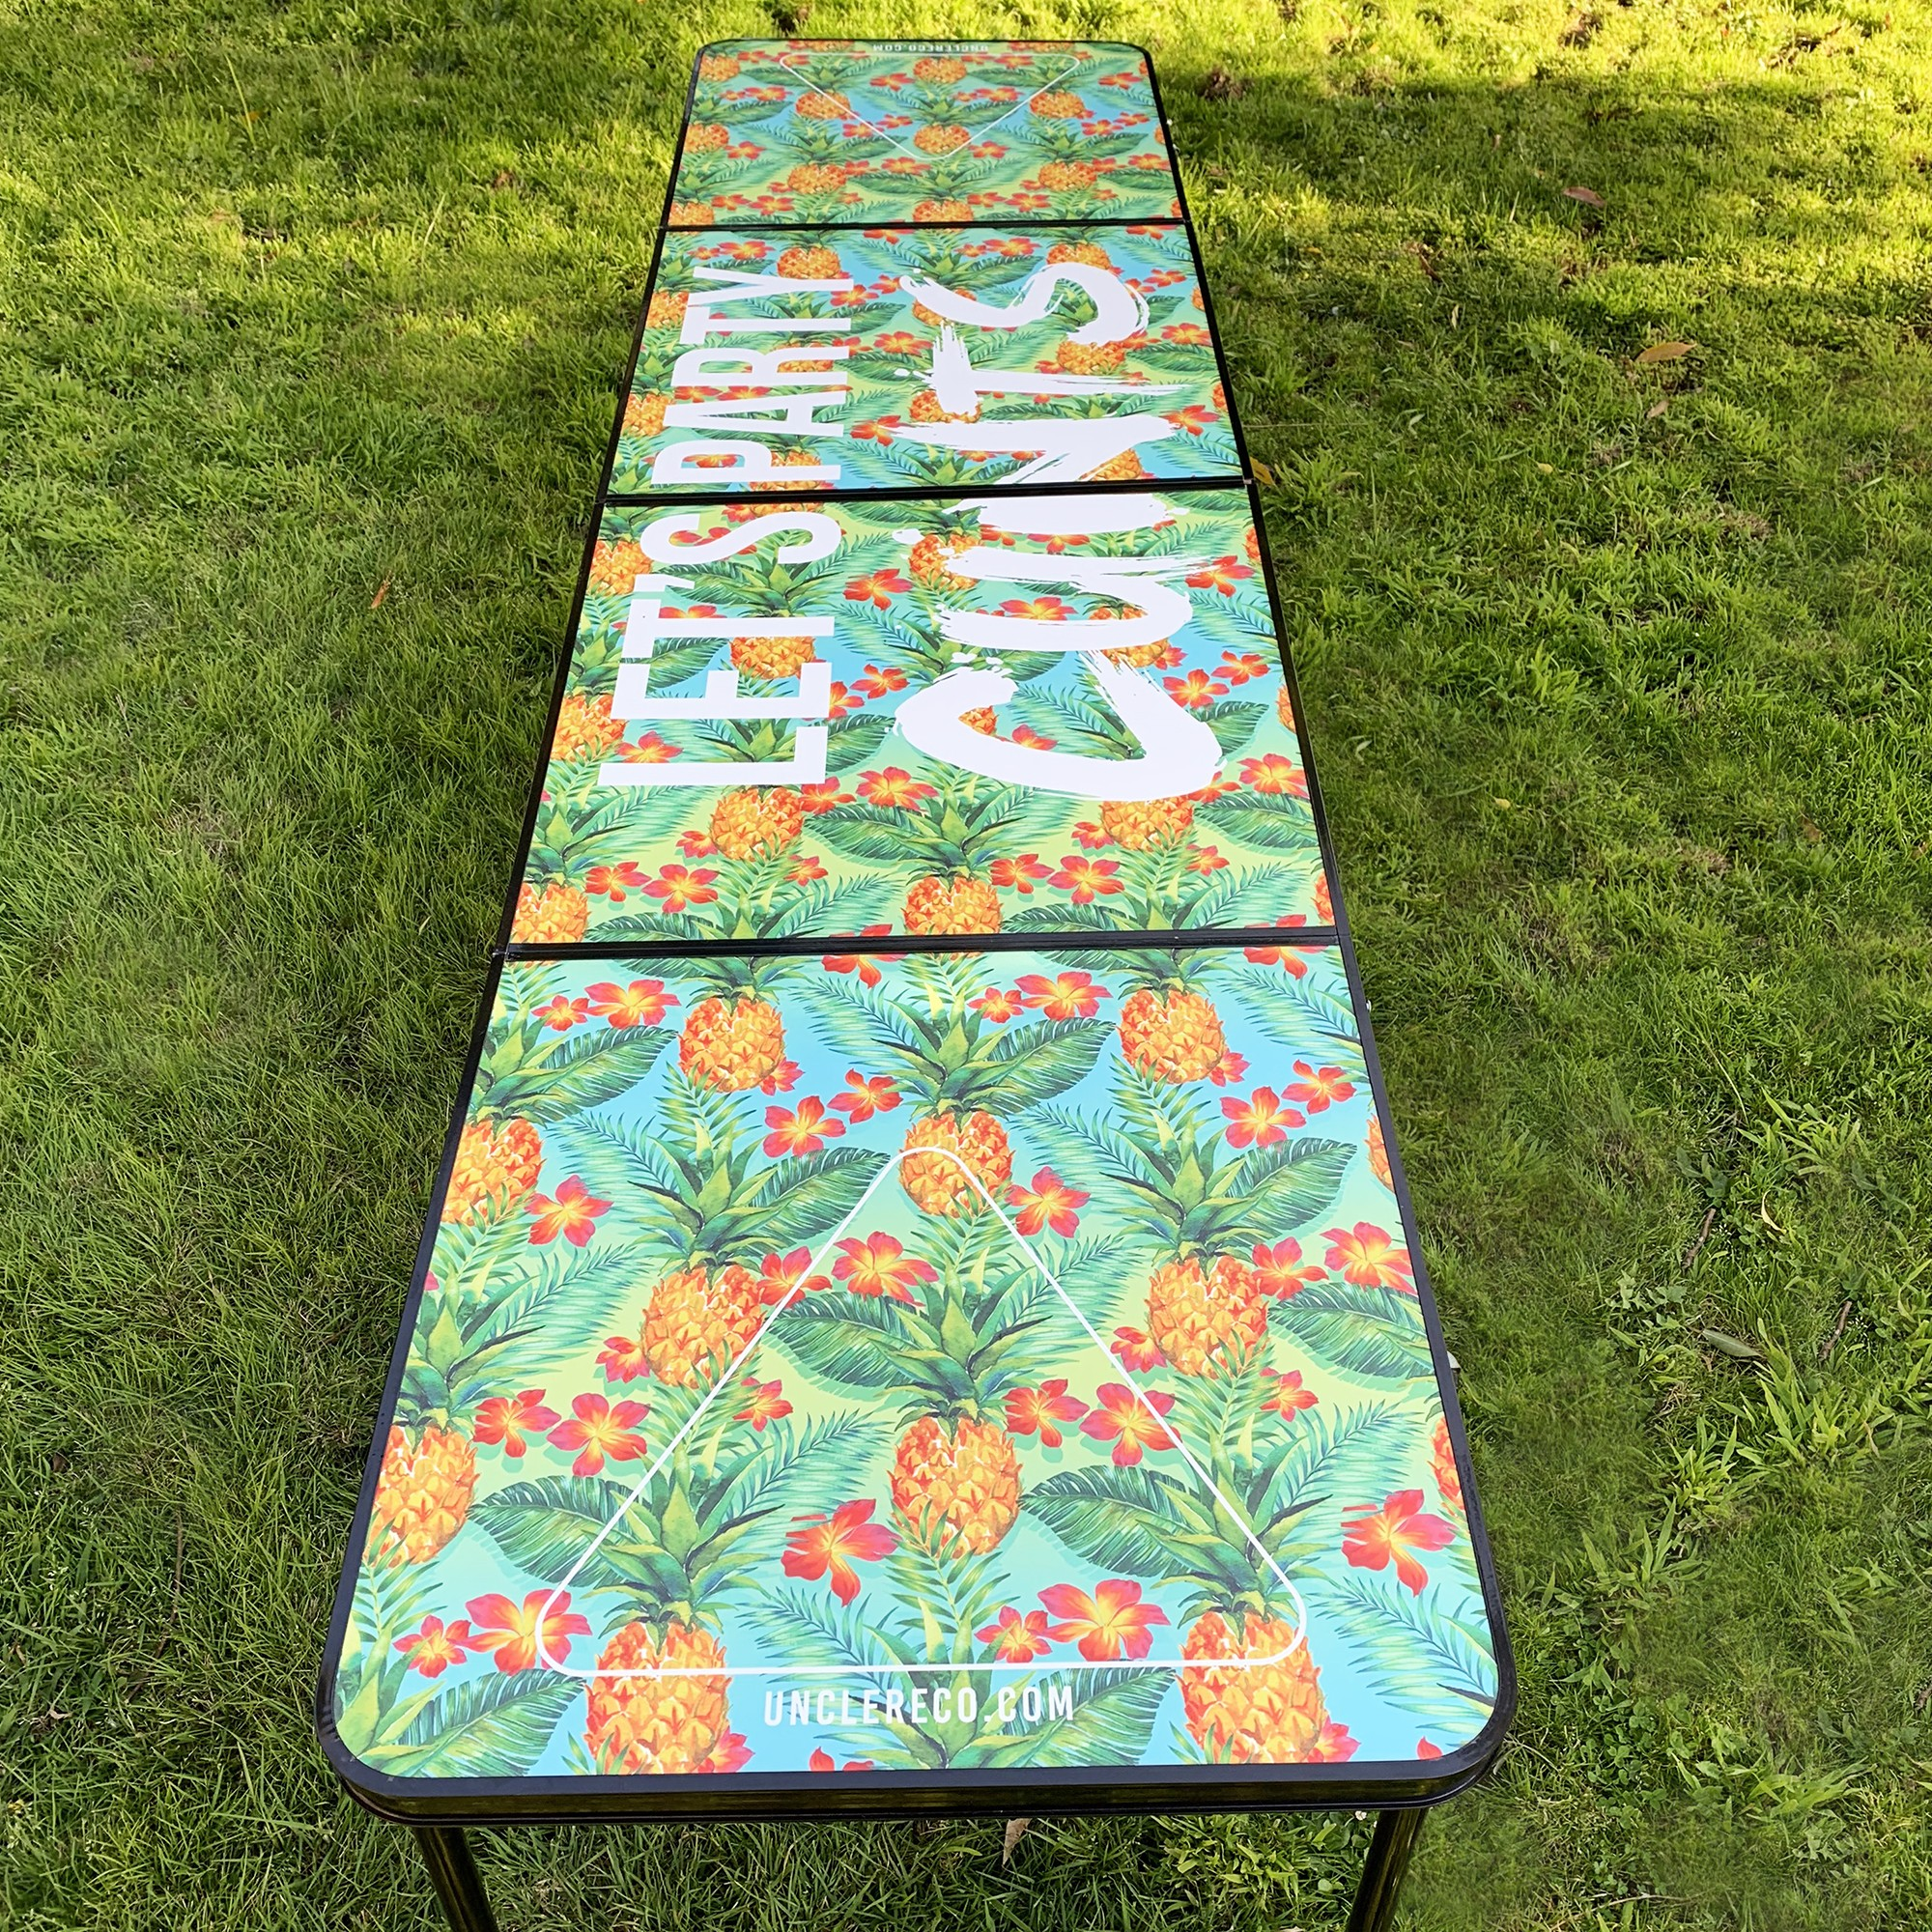 LETS PARTY BEER PONG TABLE